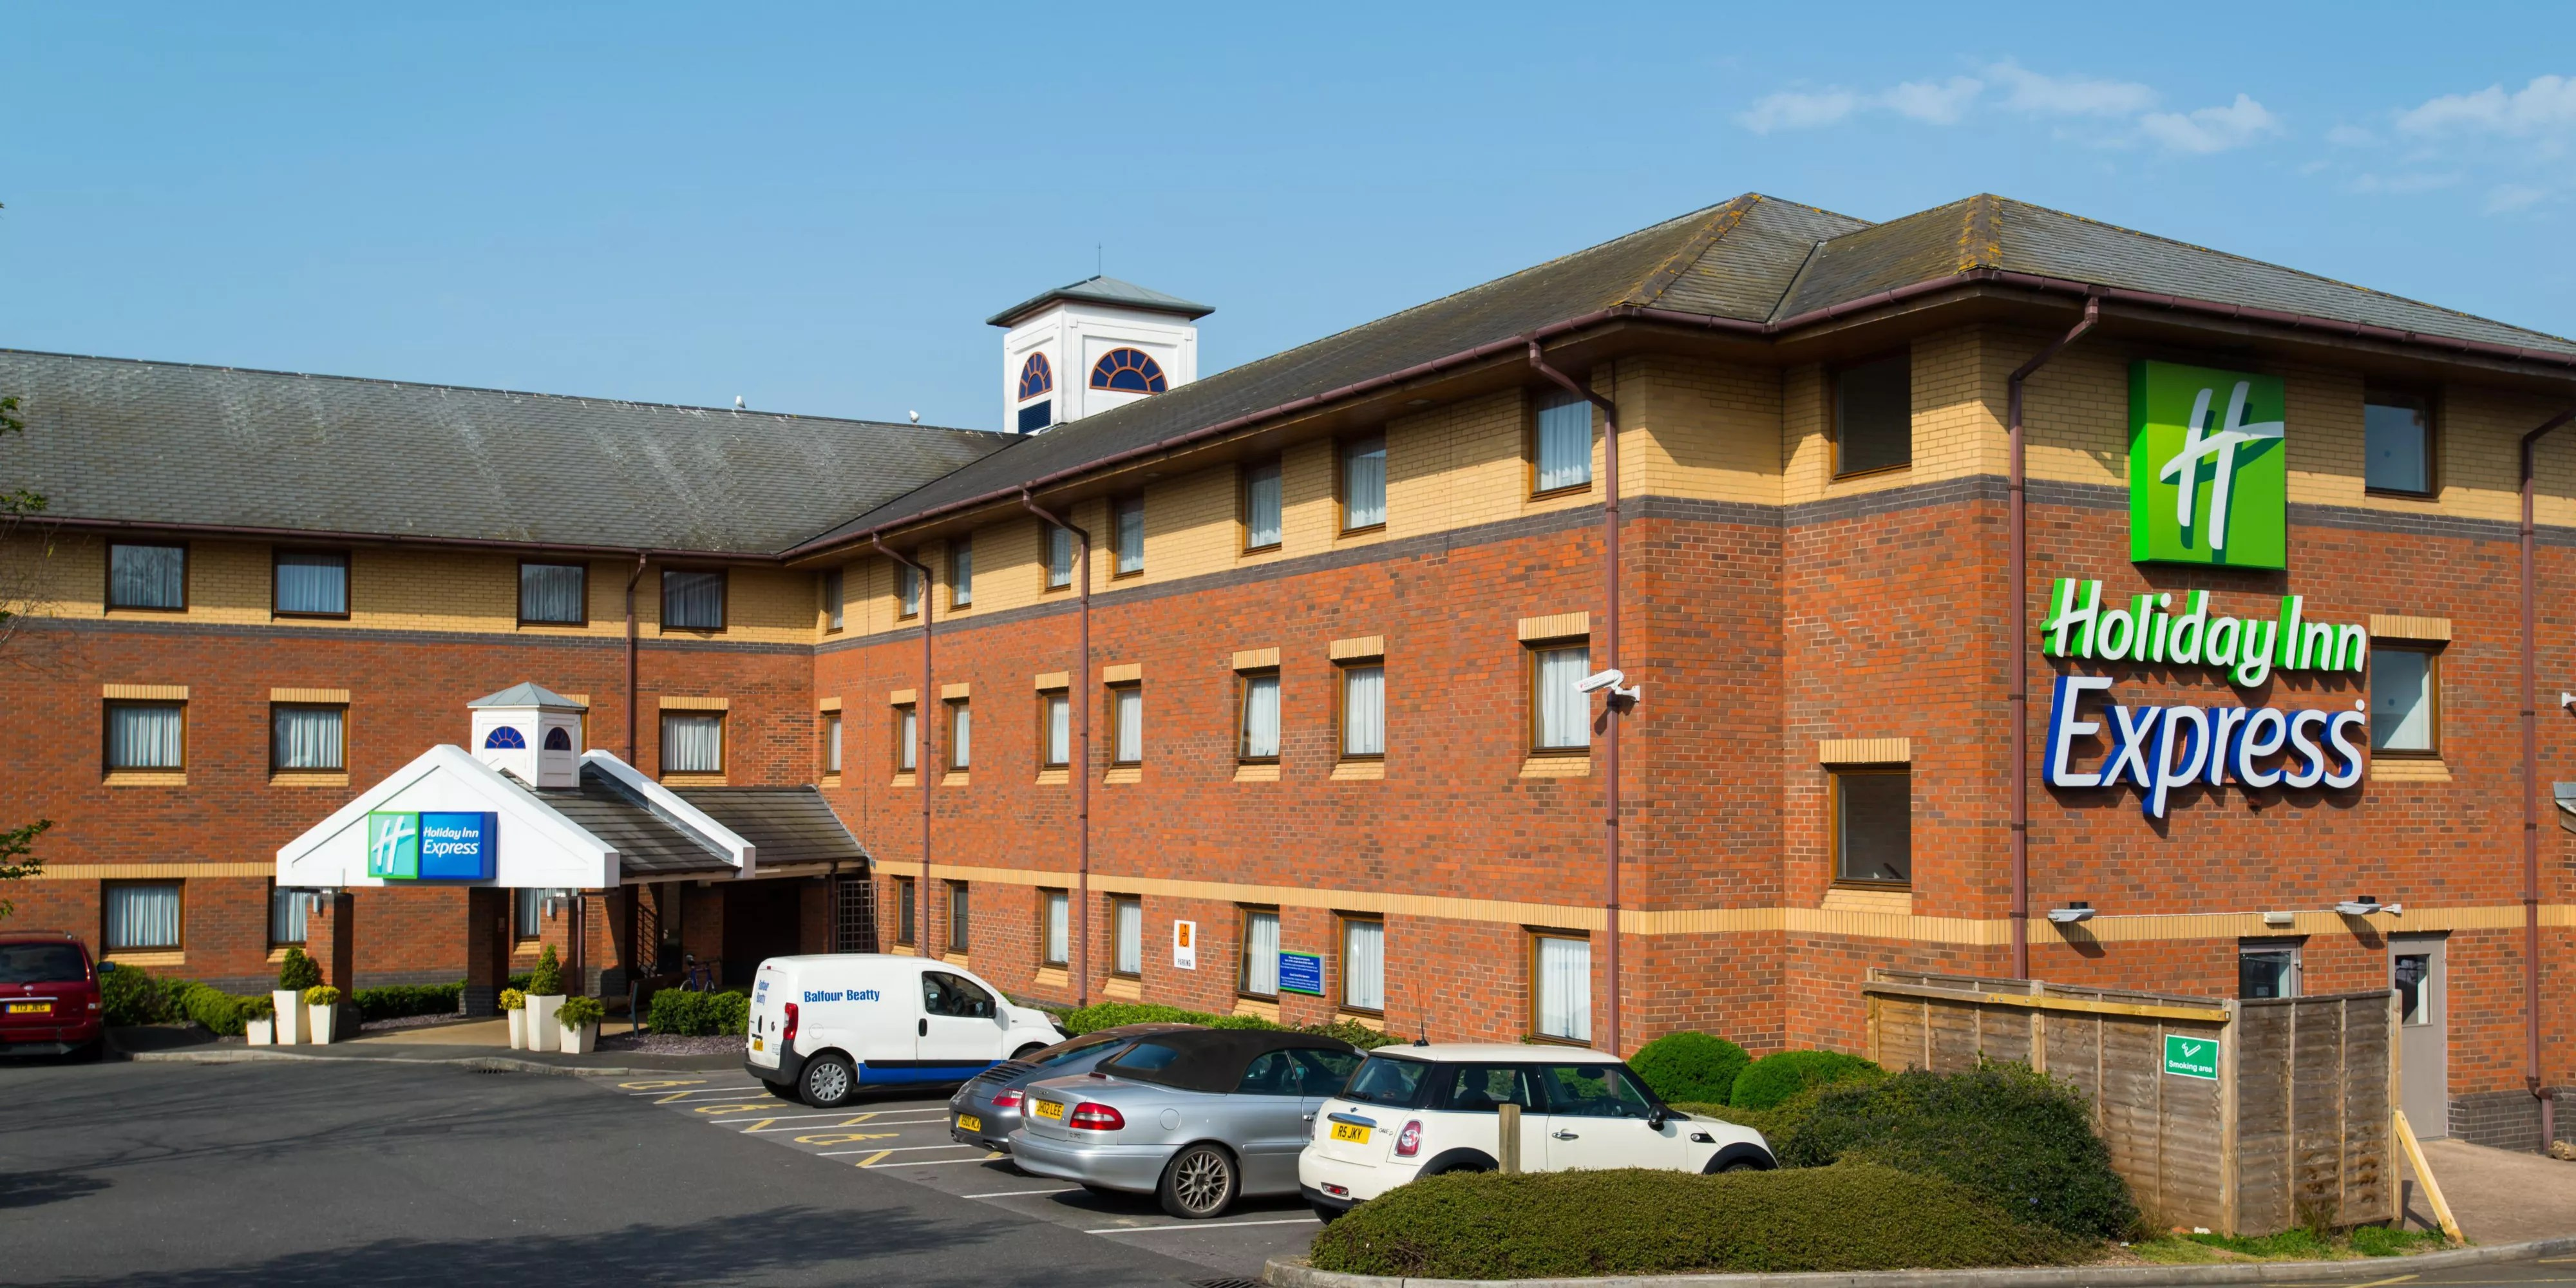 Holiday Inn Express Hotel Exeter M5 Junction 29